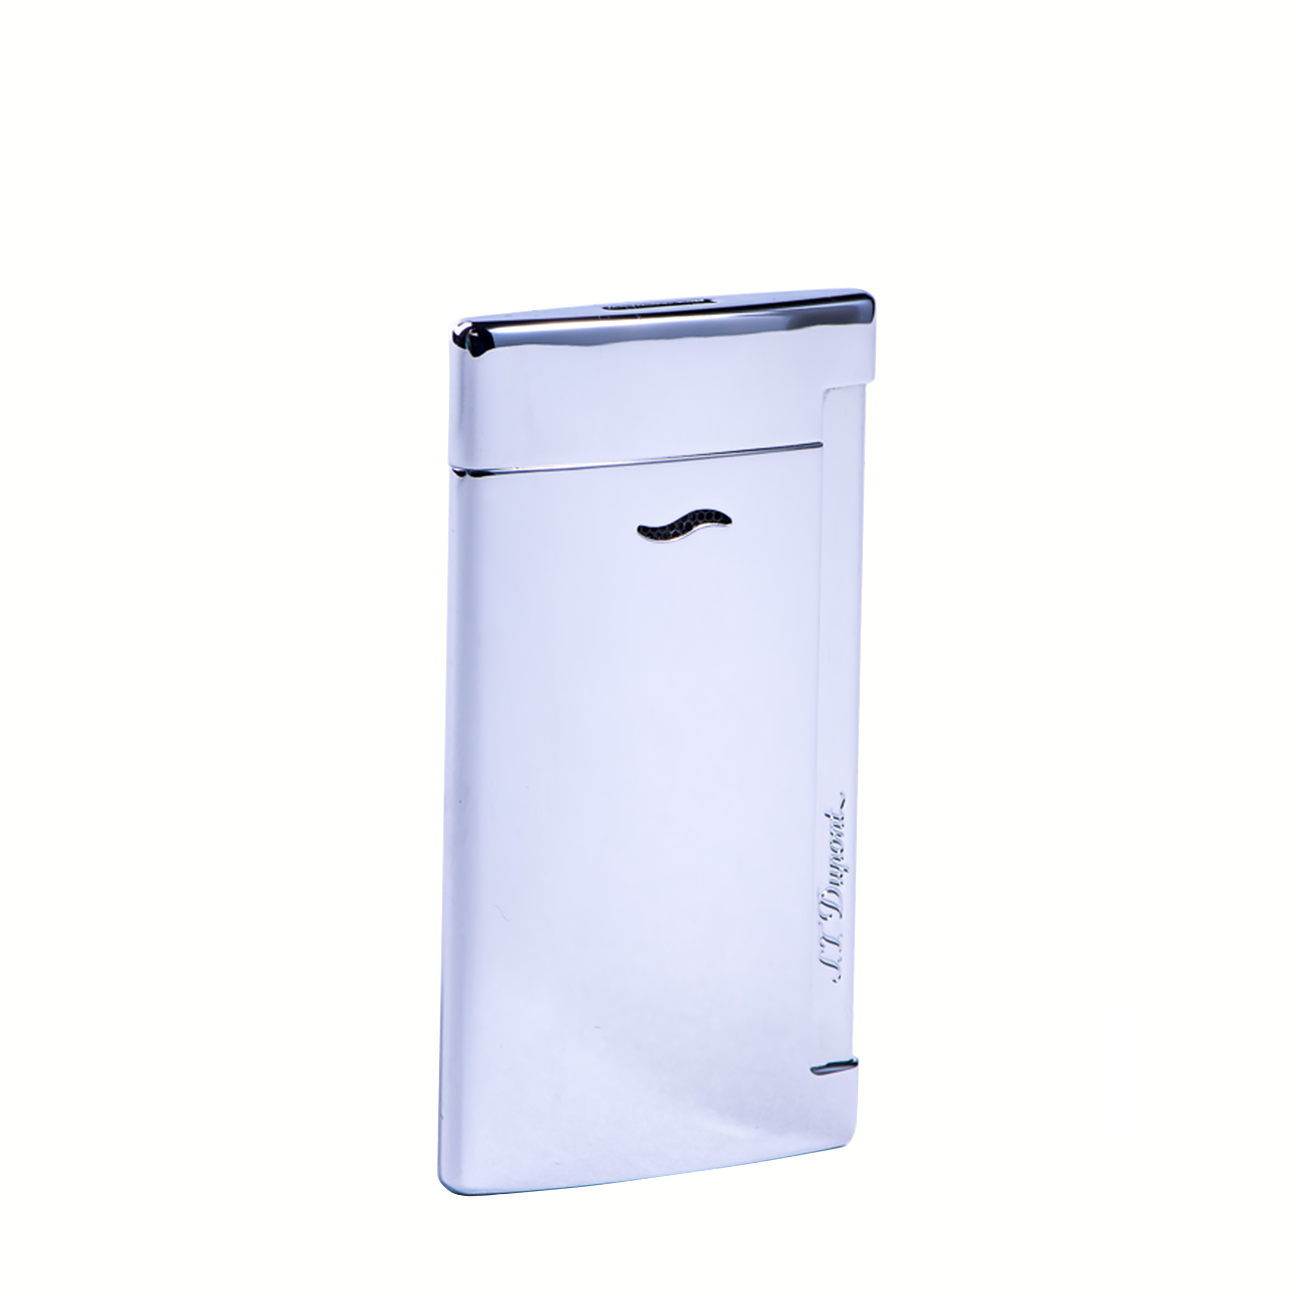 027713 FULL SHINY CHROME LIGHTER imagine produs